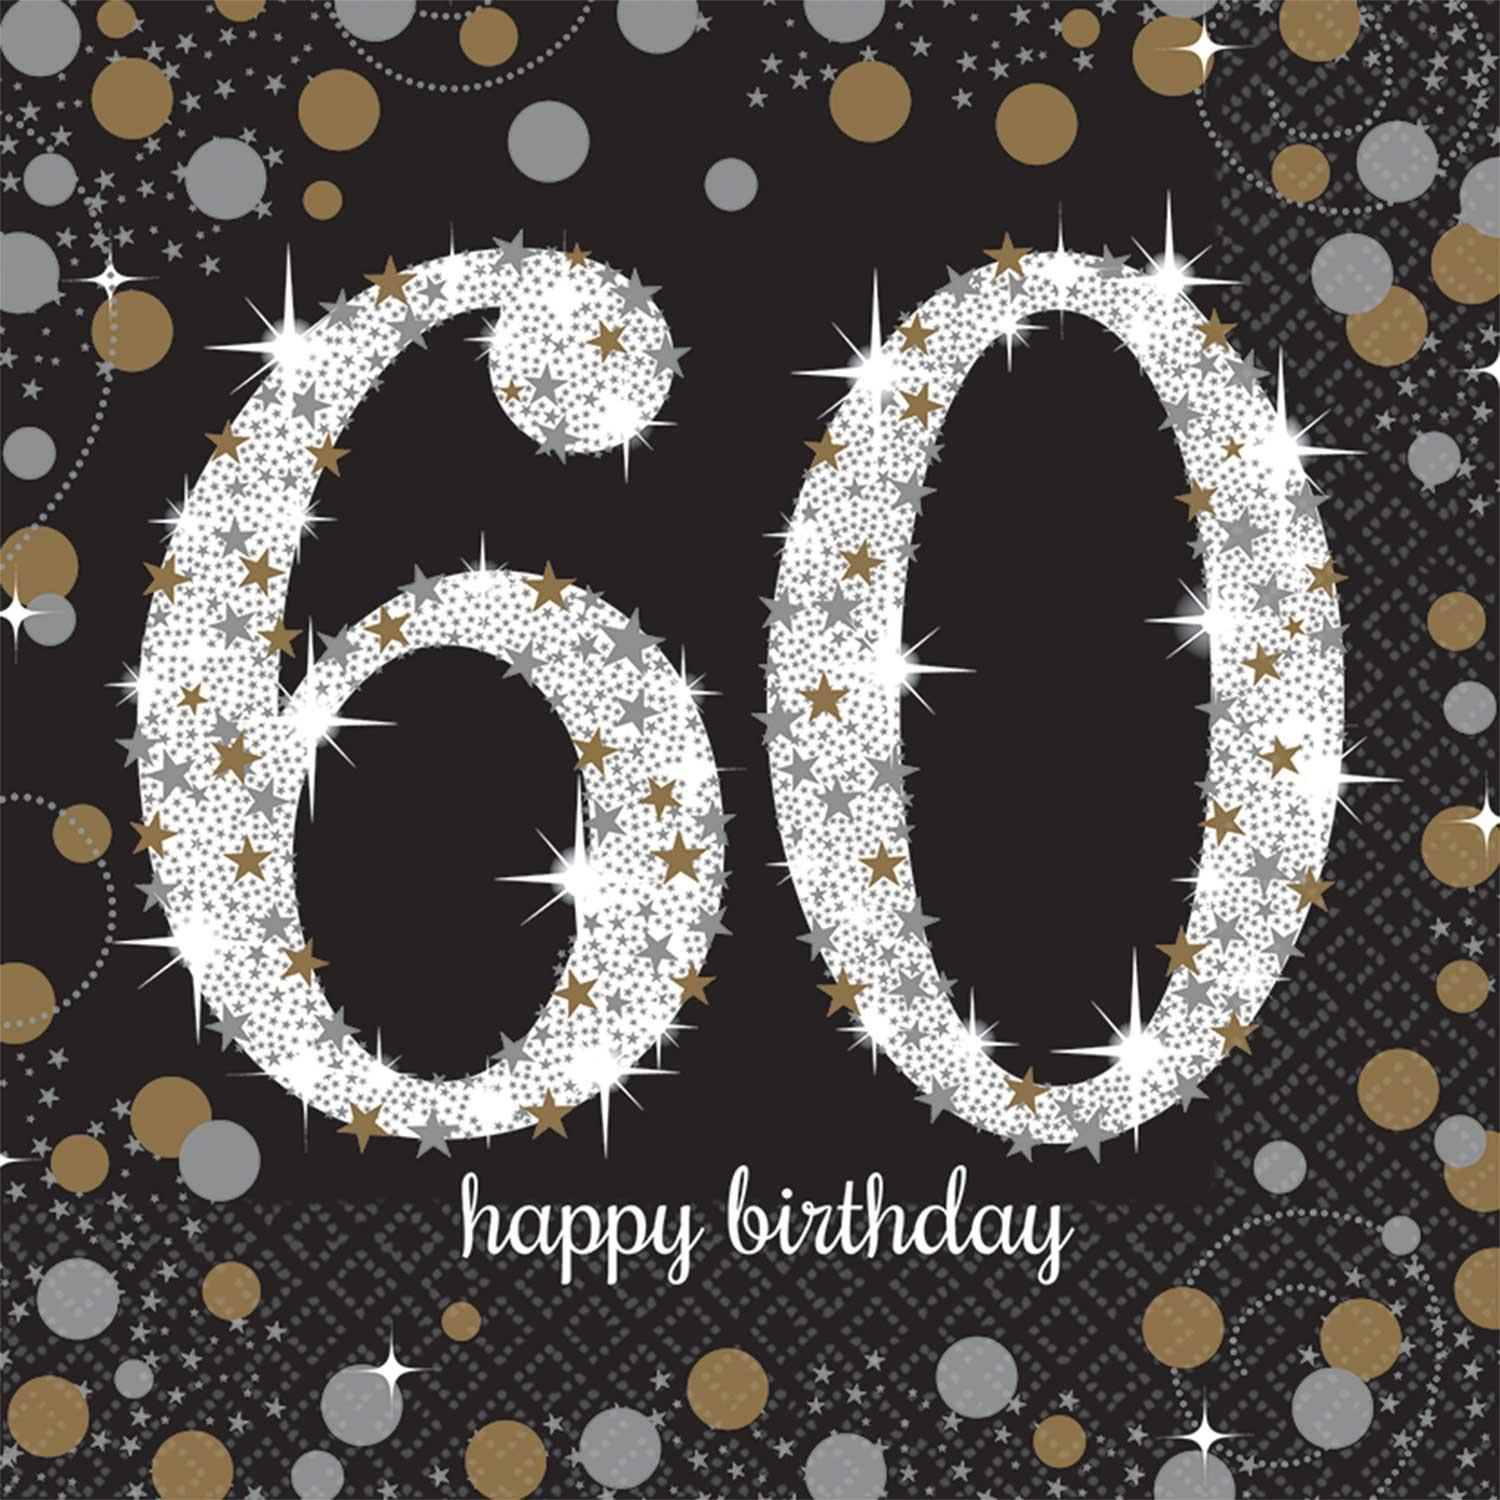 Paper Napkins 60th Birthday Black Gold Silver